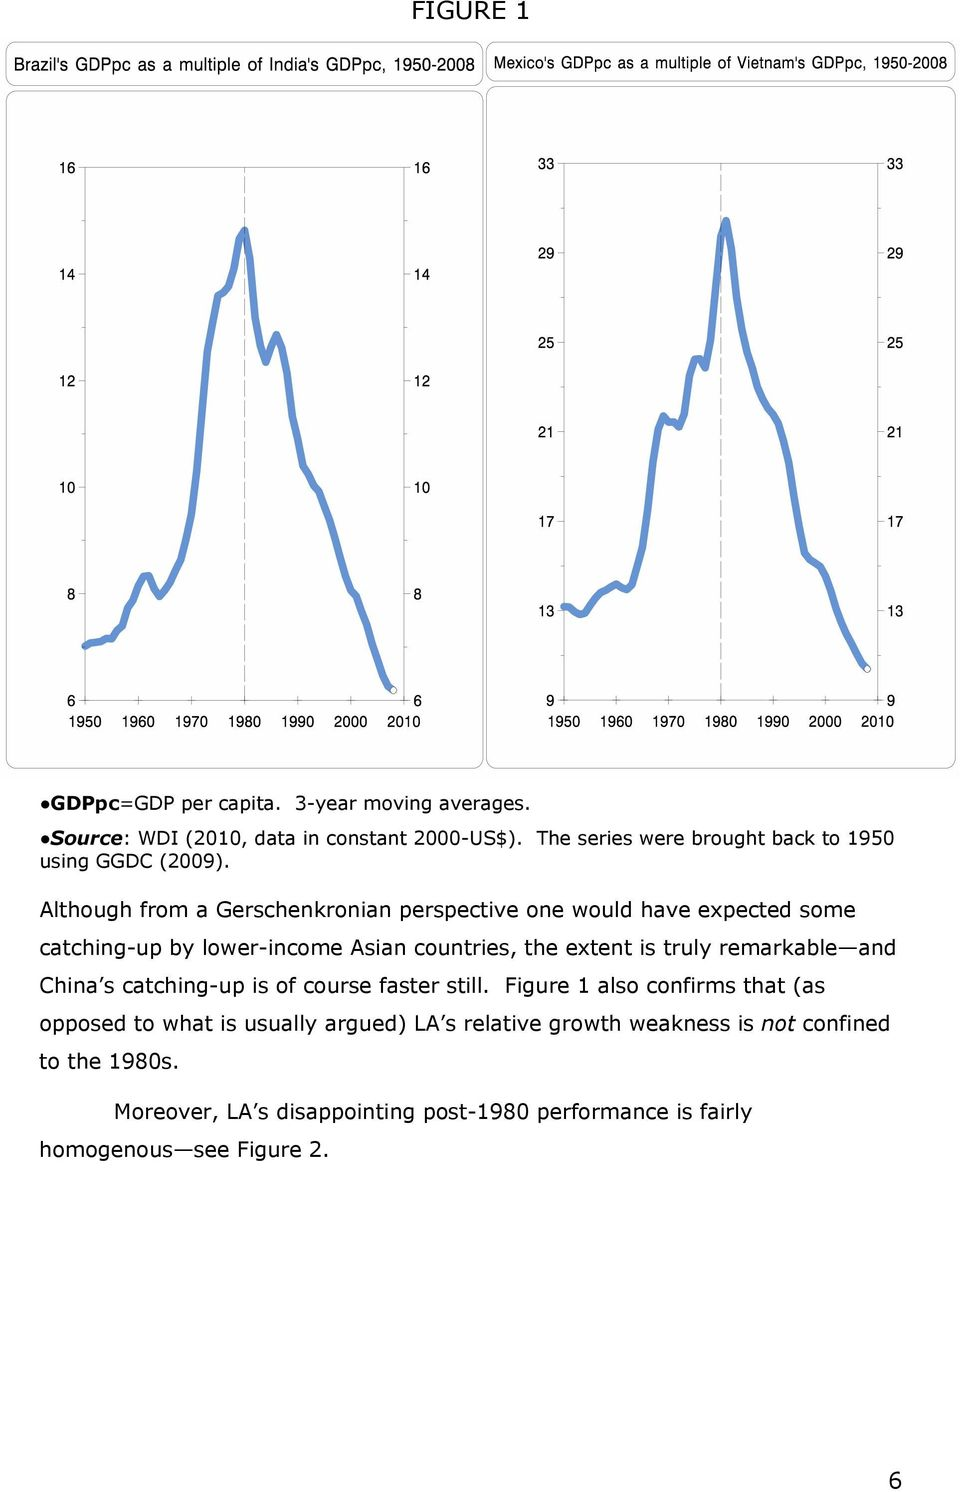 Although from a Gerschenkronian perspective one would have expected some catching-up by lower-income Asian countries, the extent is truly